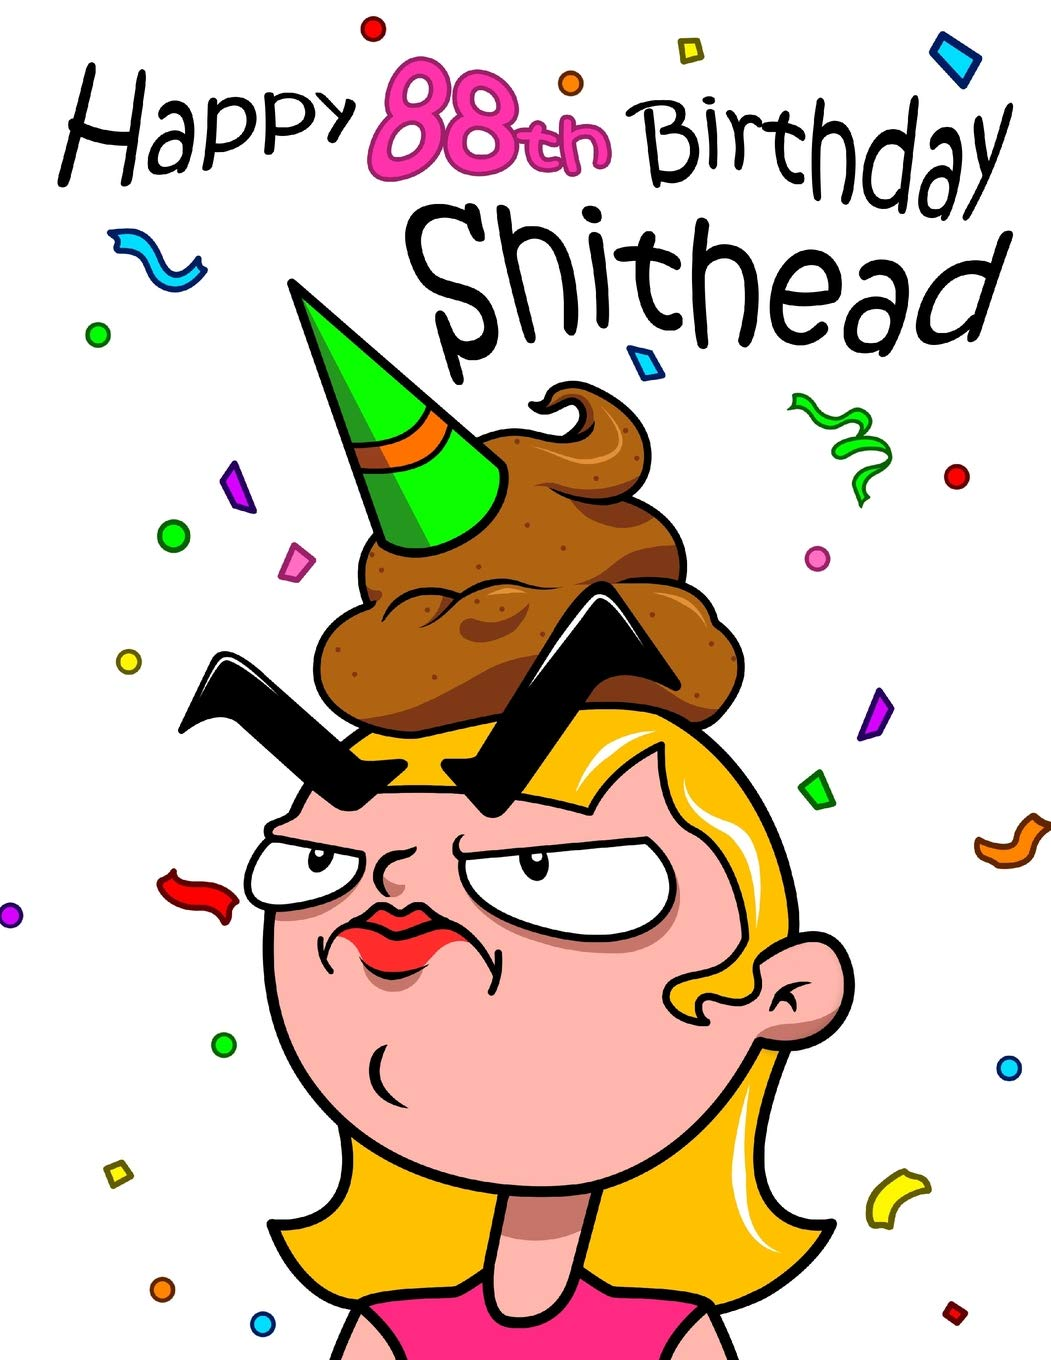 Happy 88th Birthday Shithead Forget The Card And Get This